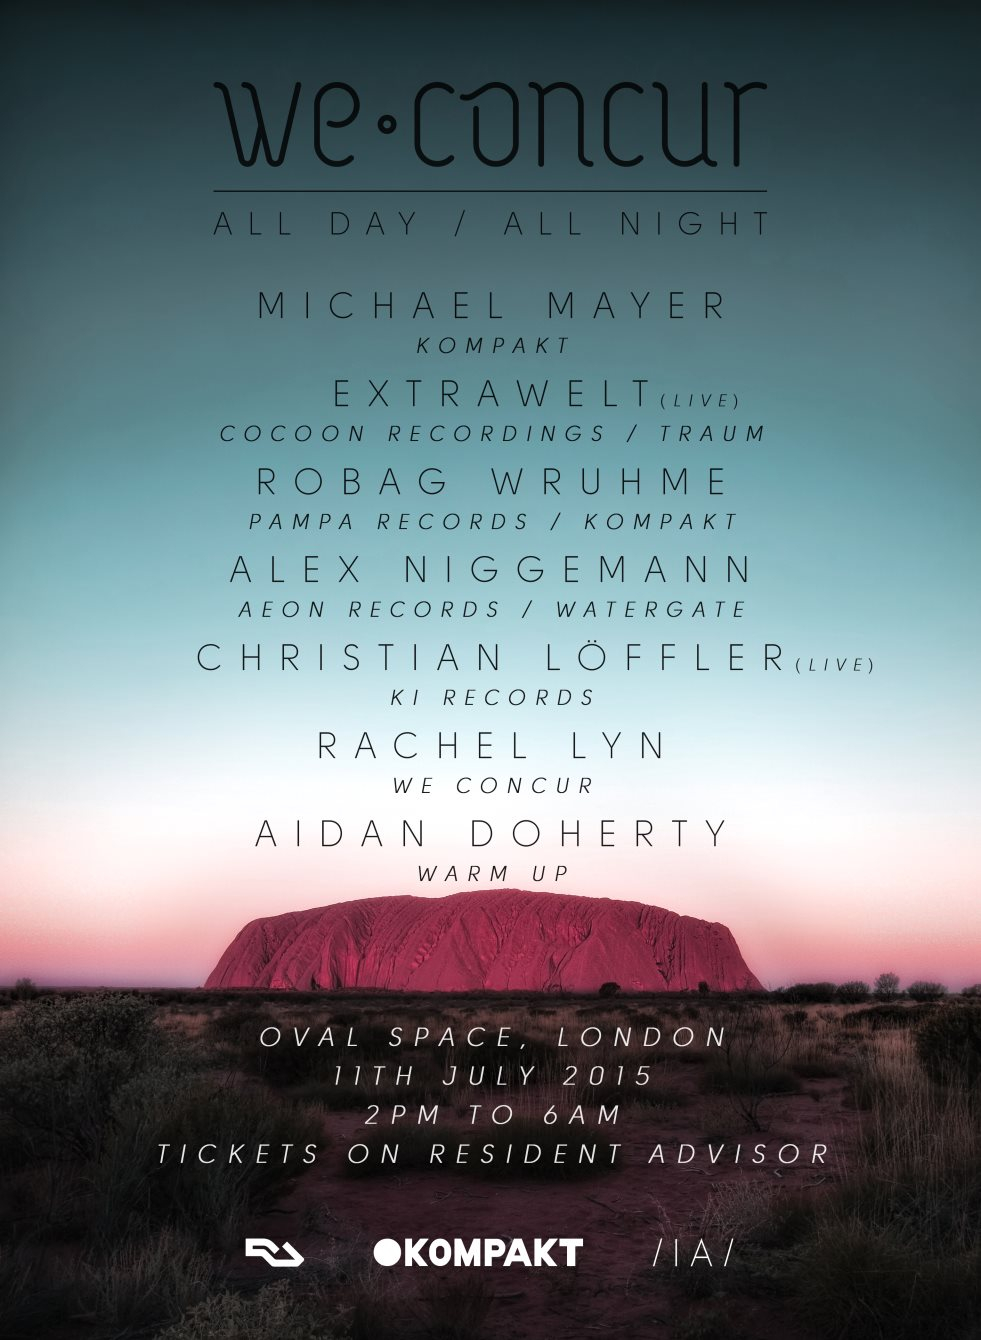 We Concur All Day / All Night with Michael Mayer, Extrawelt, Robag Wruhme - Flyer back